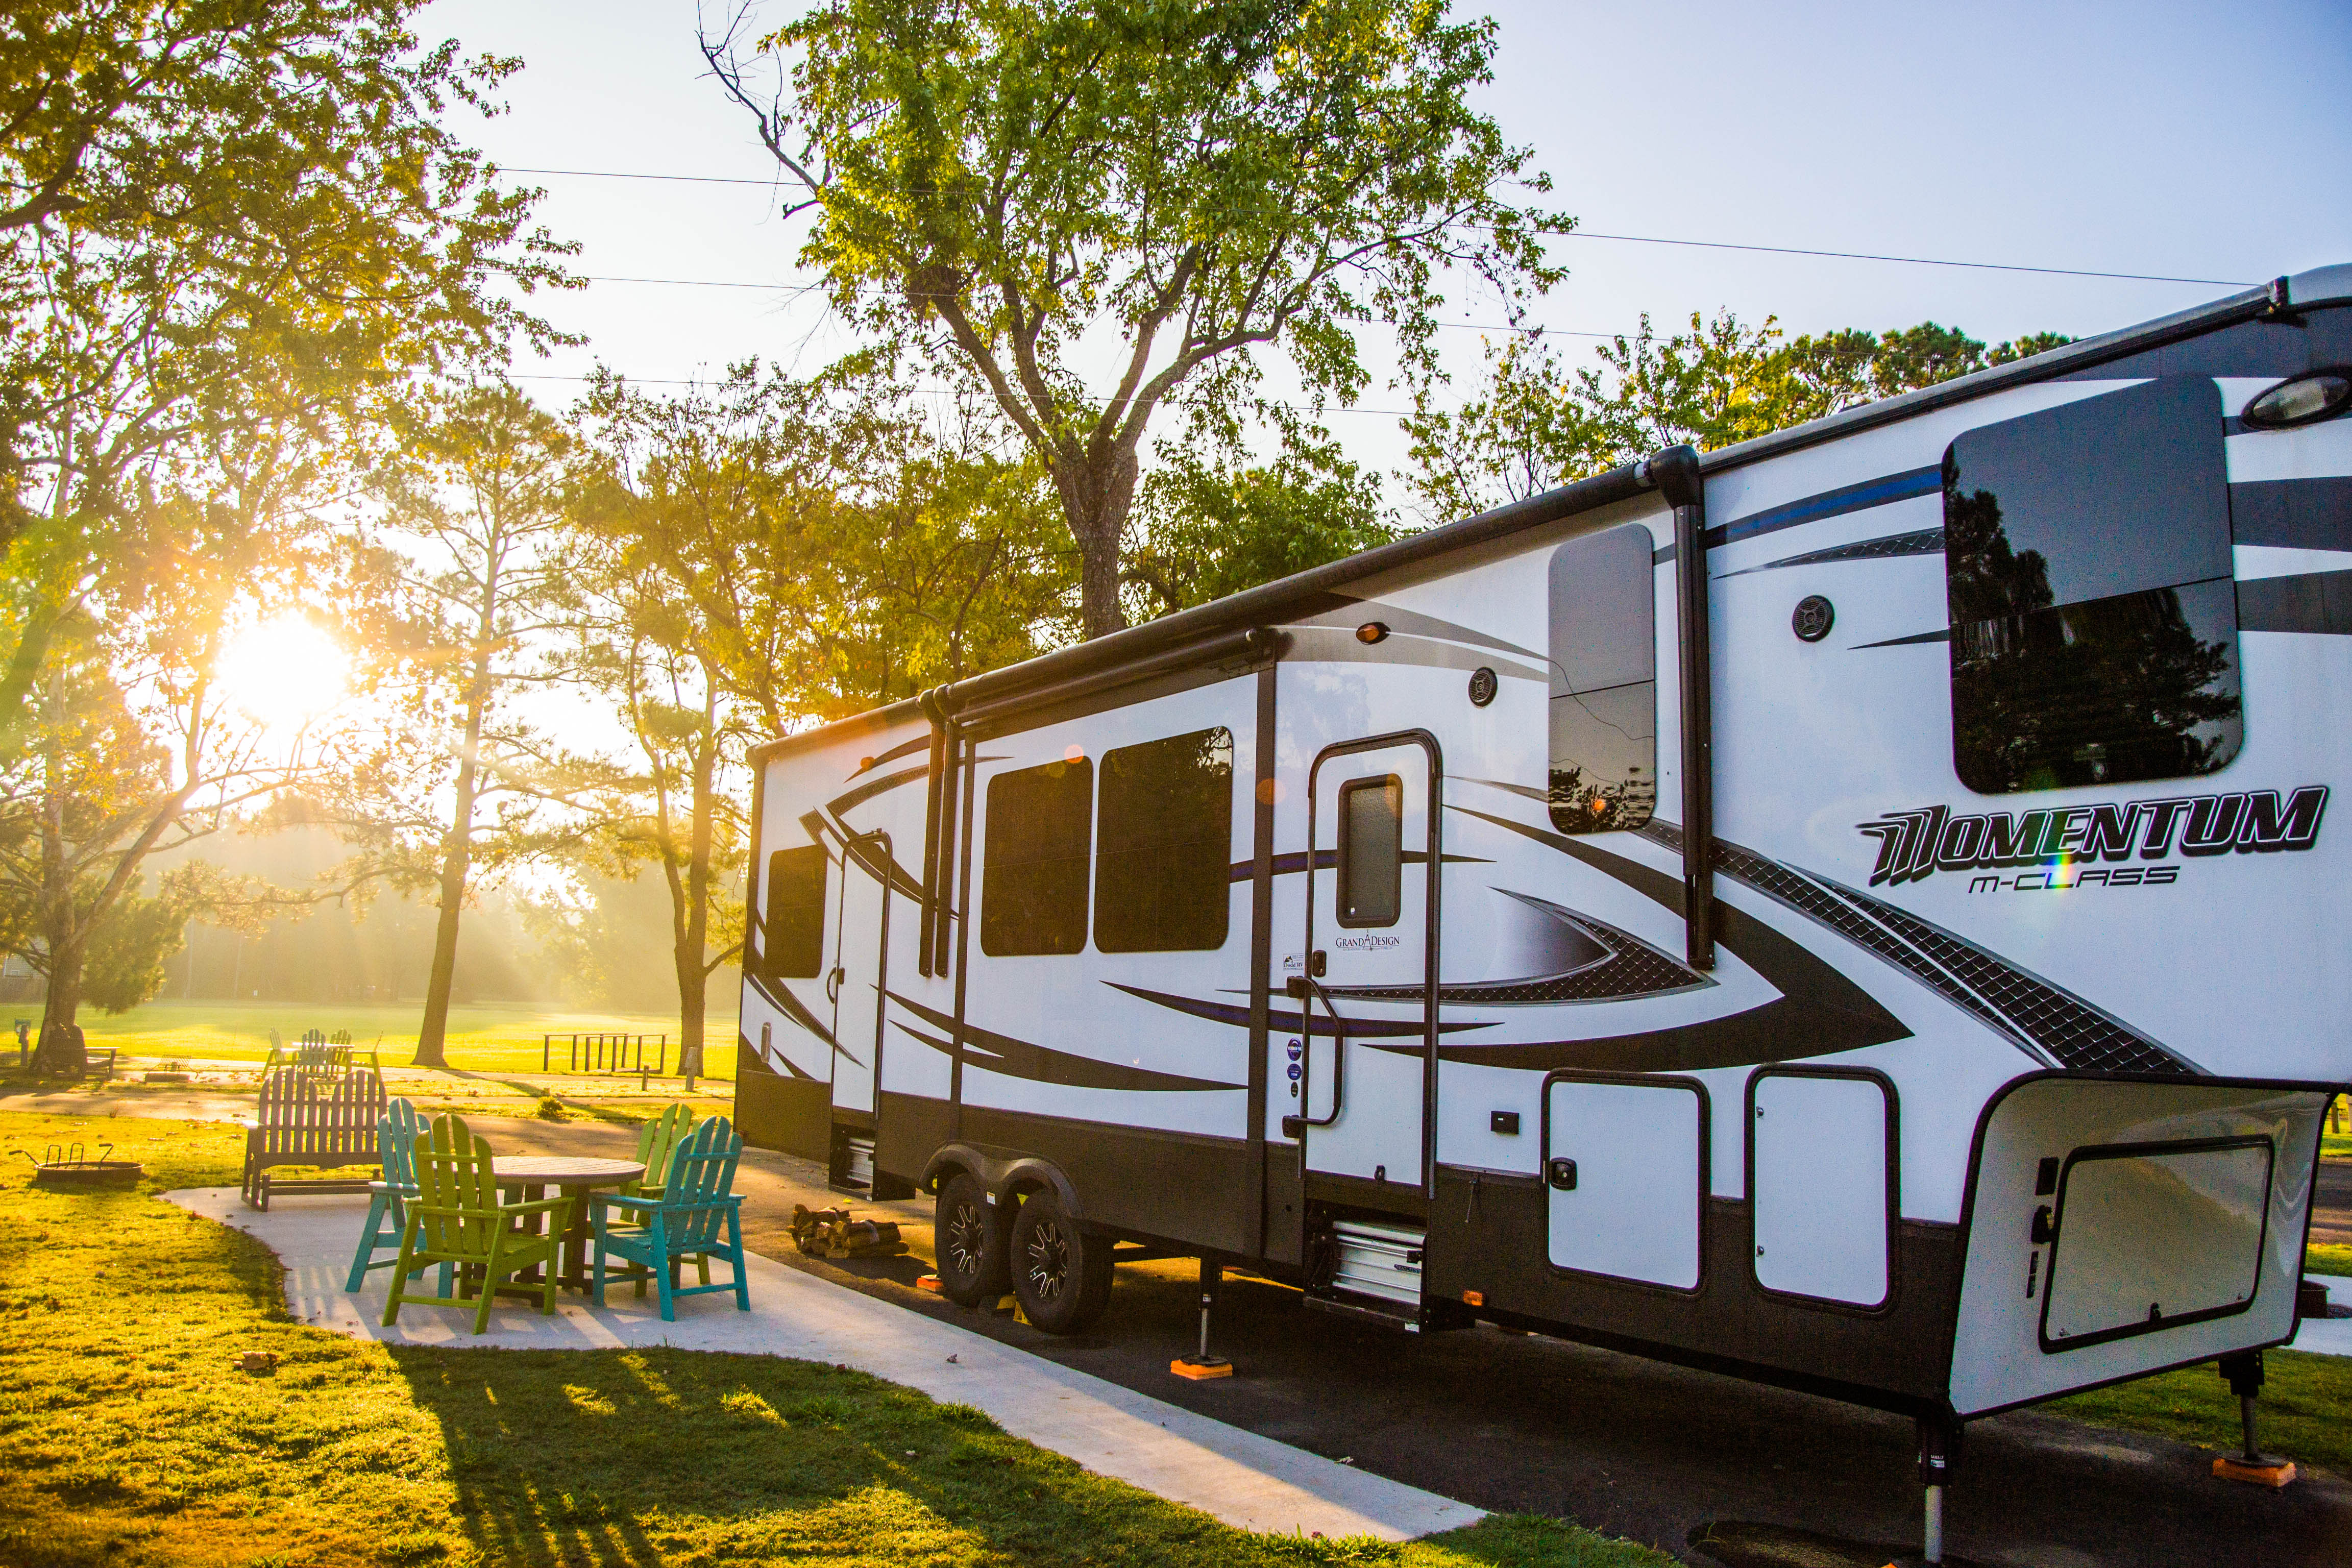 A variety of RV sites